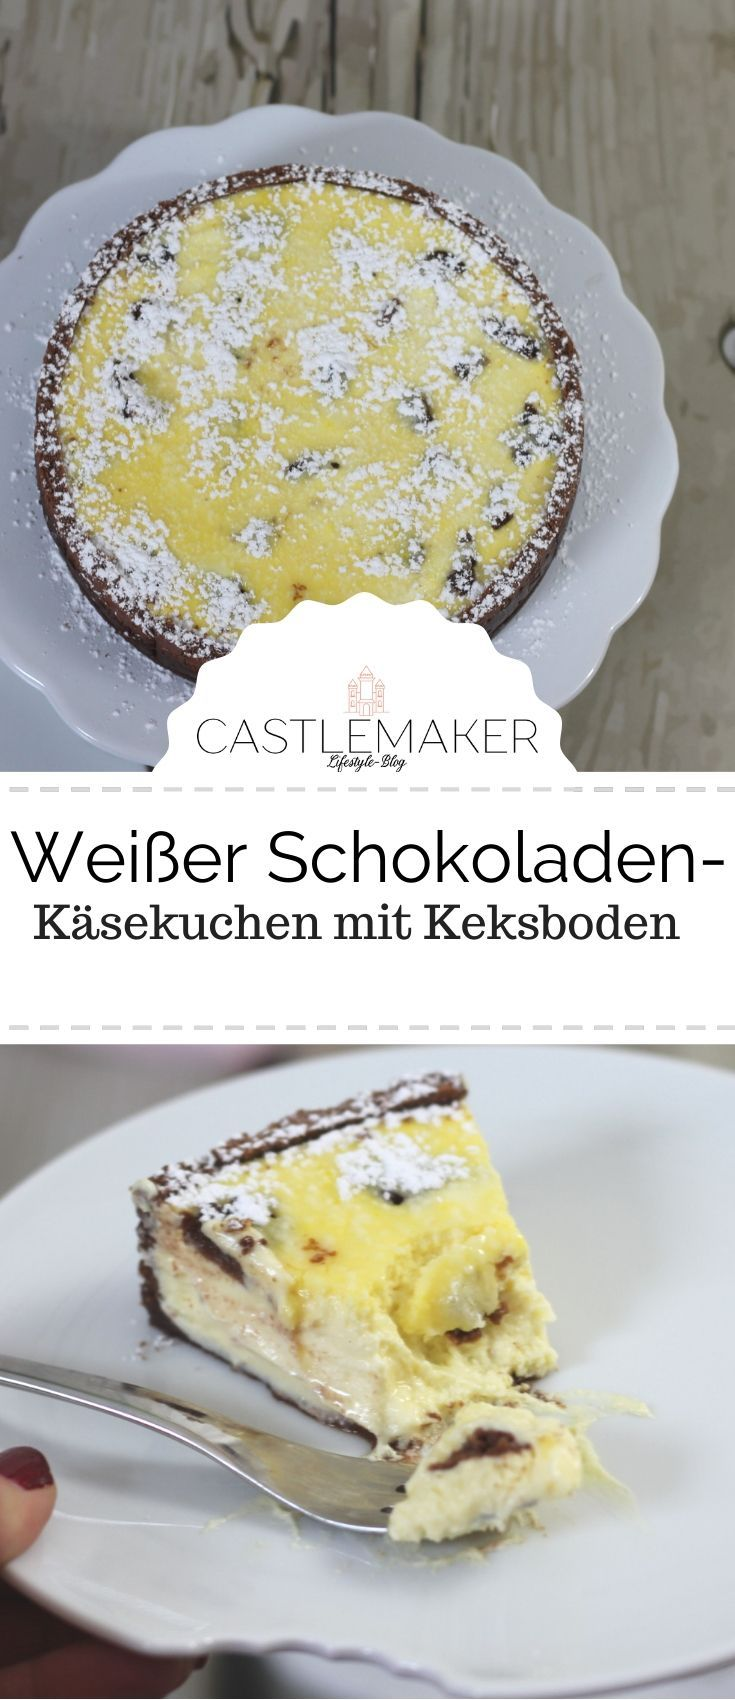 Photo of White chocolate cheesecake – a creamy plucked cake with a difference «CASTLEMAKER Lifestyle Blog